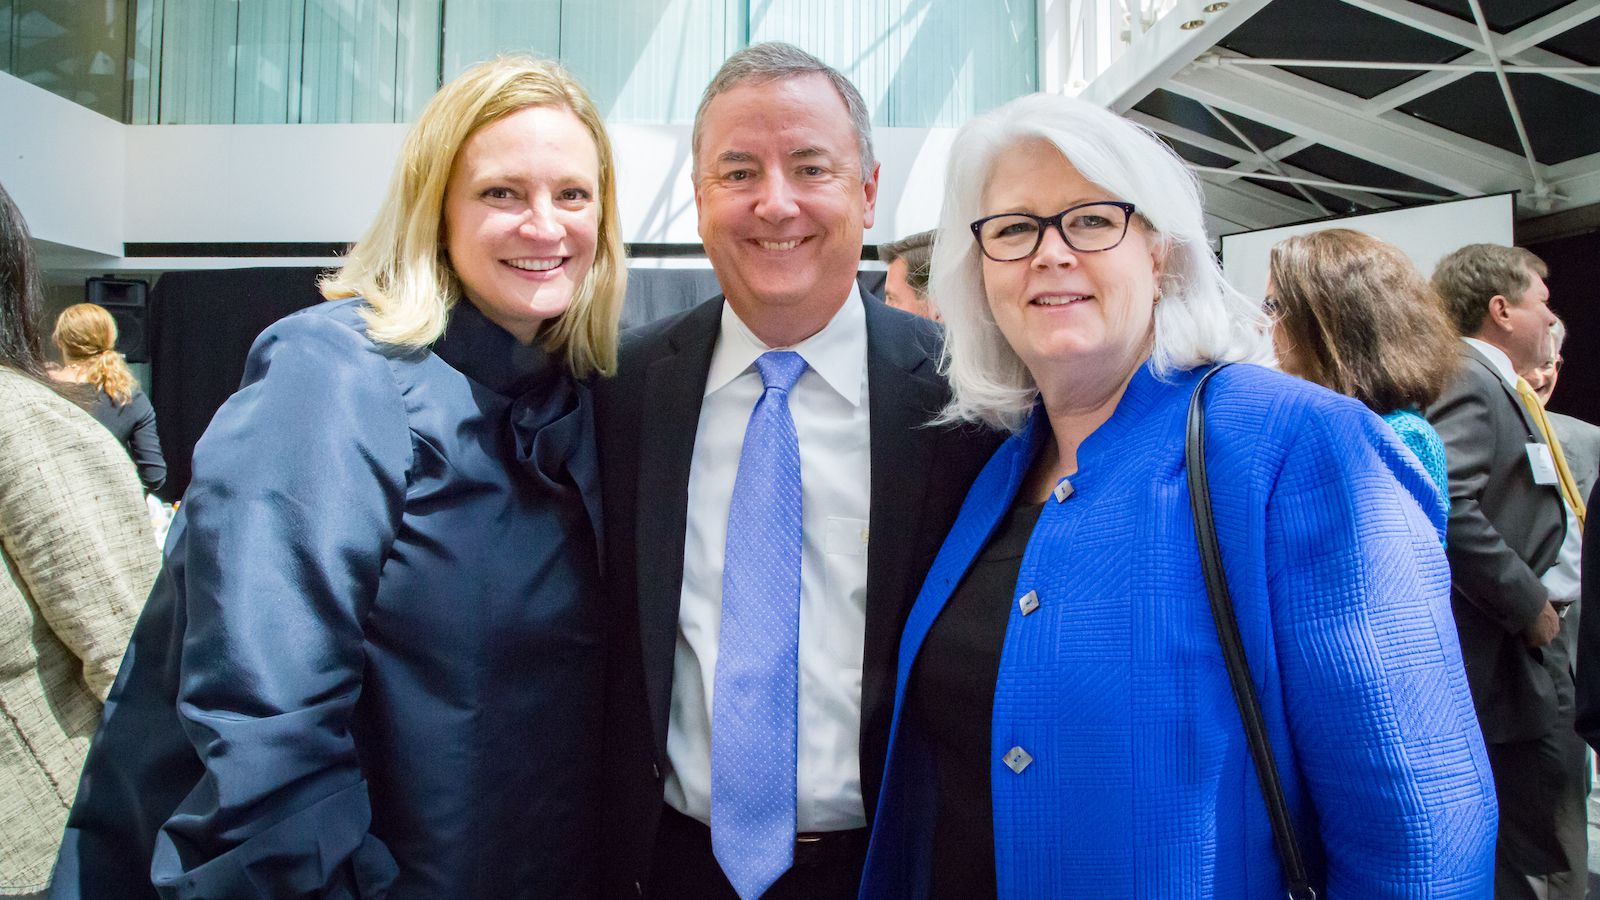 United Way of Metropolitan Dallas CEO and President Jennifer Sampson (left) stands with United Way Dallas 2019-20 campaign chairs Tom and Karen Falk at United Way's building-naming luncheon in January.